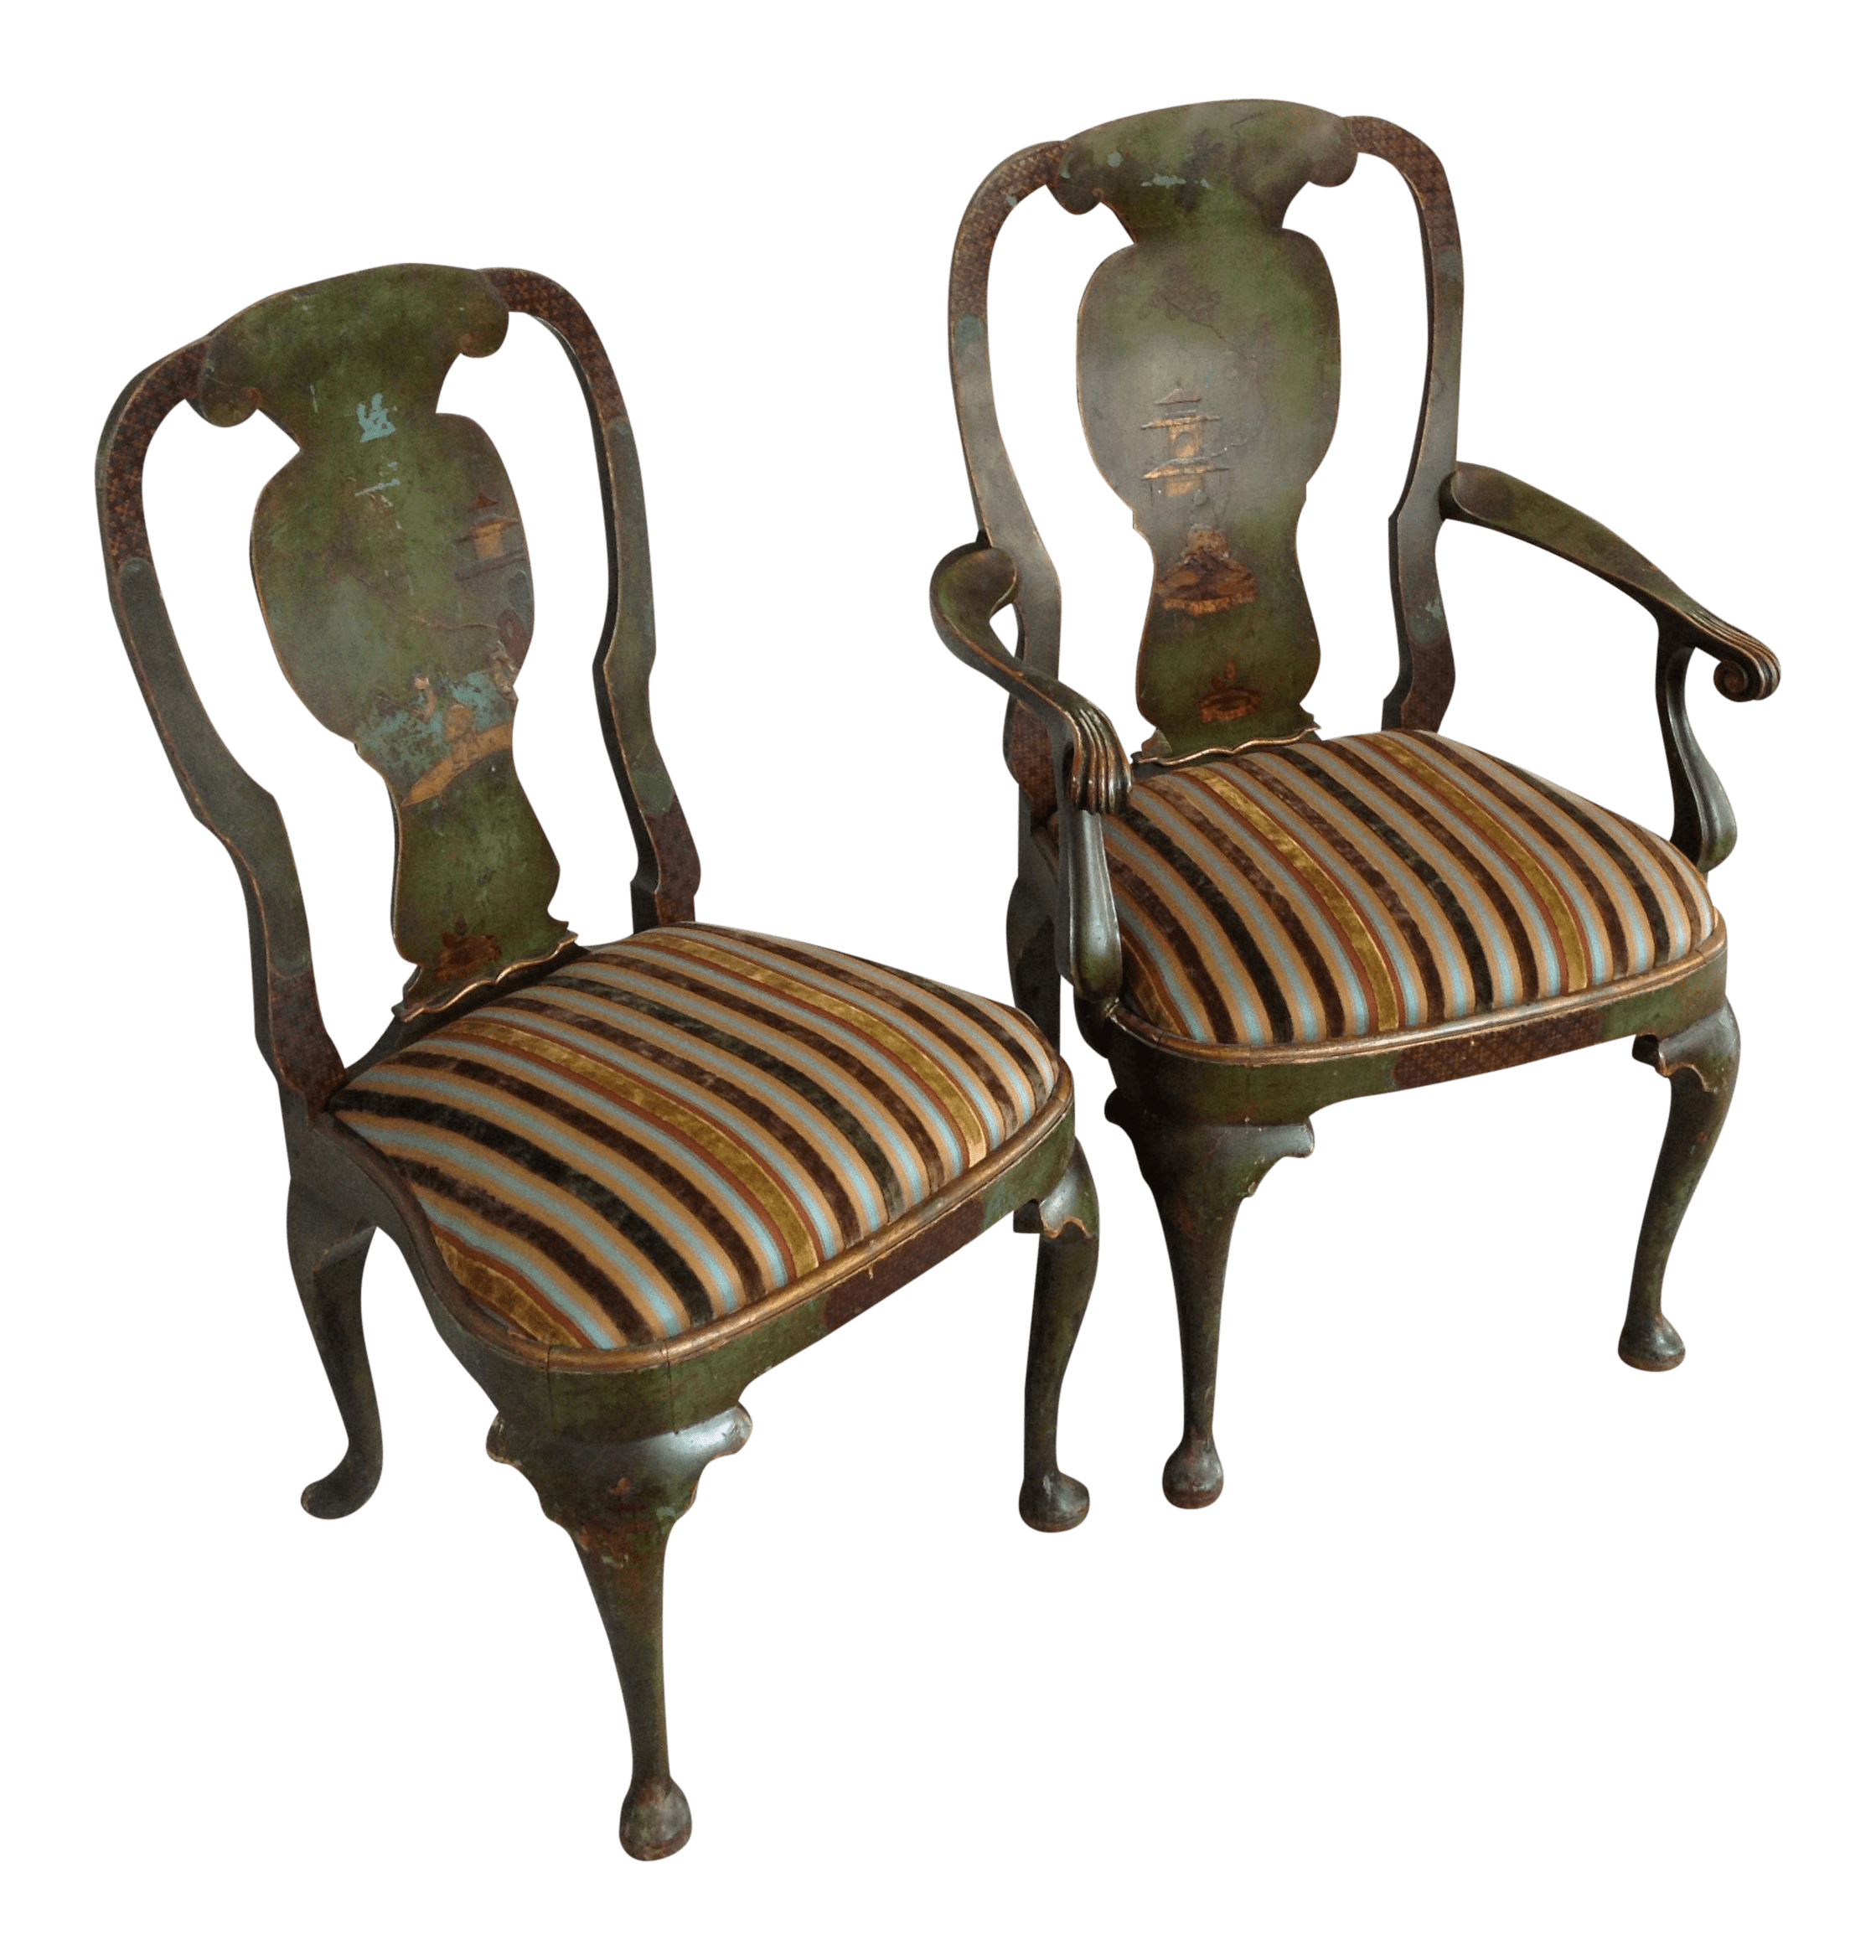 Emerald Green Accent Chair Emerald Green Chairs With Landscape Motif Pair Chairish